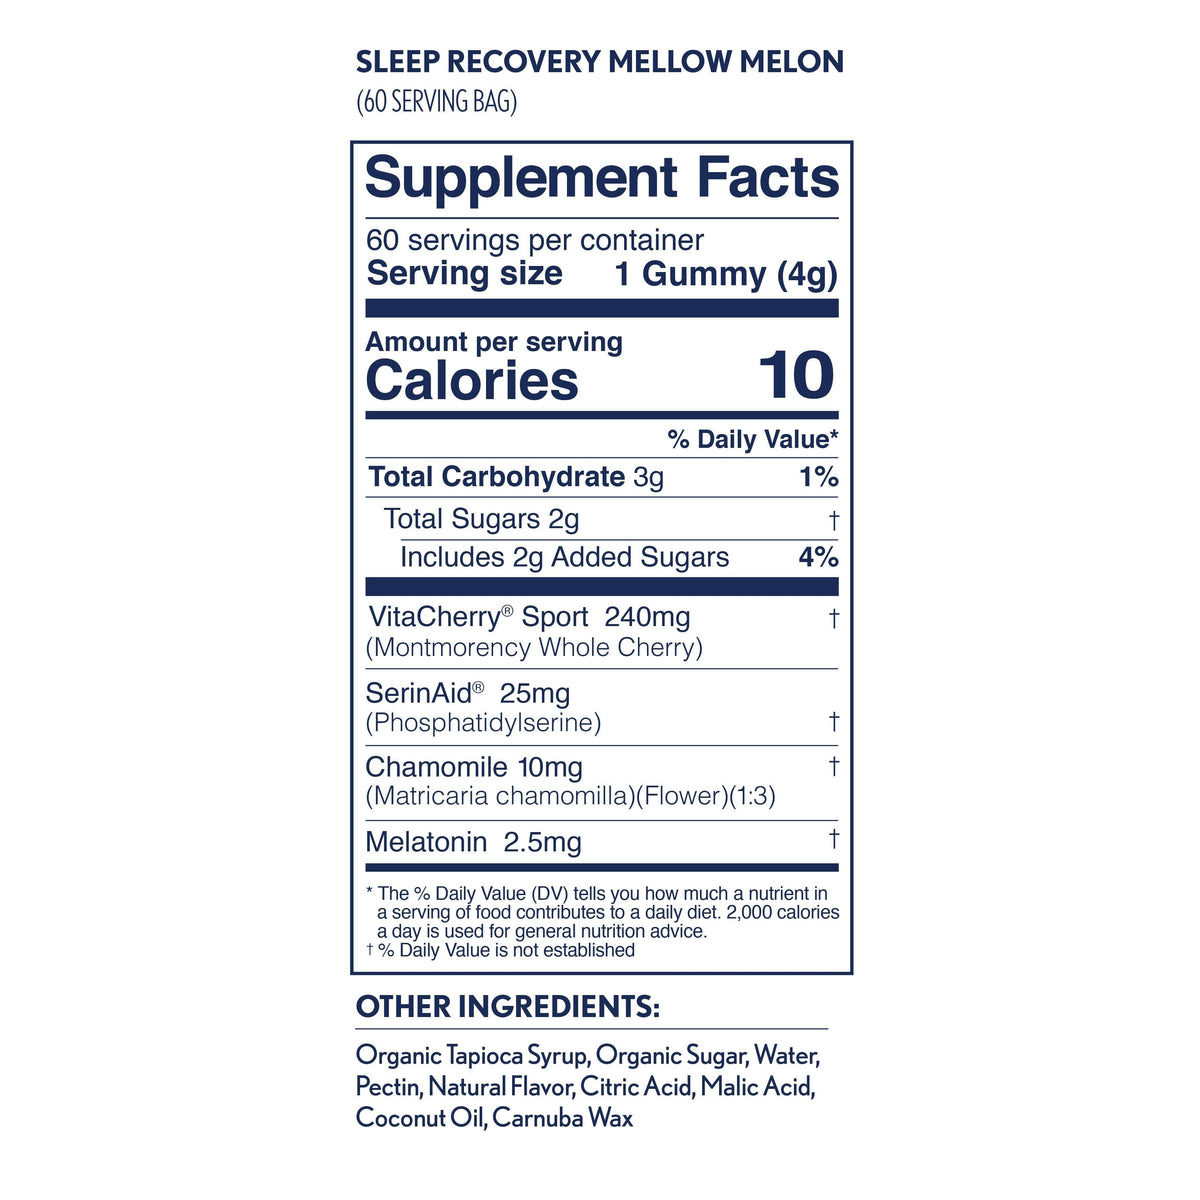 Sleep Recovery - Hilo Gummies nutrition panel